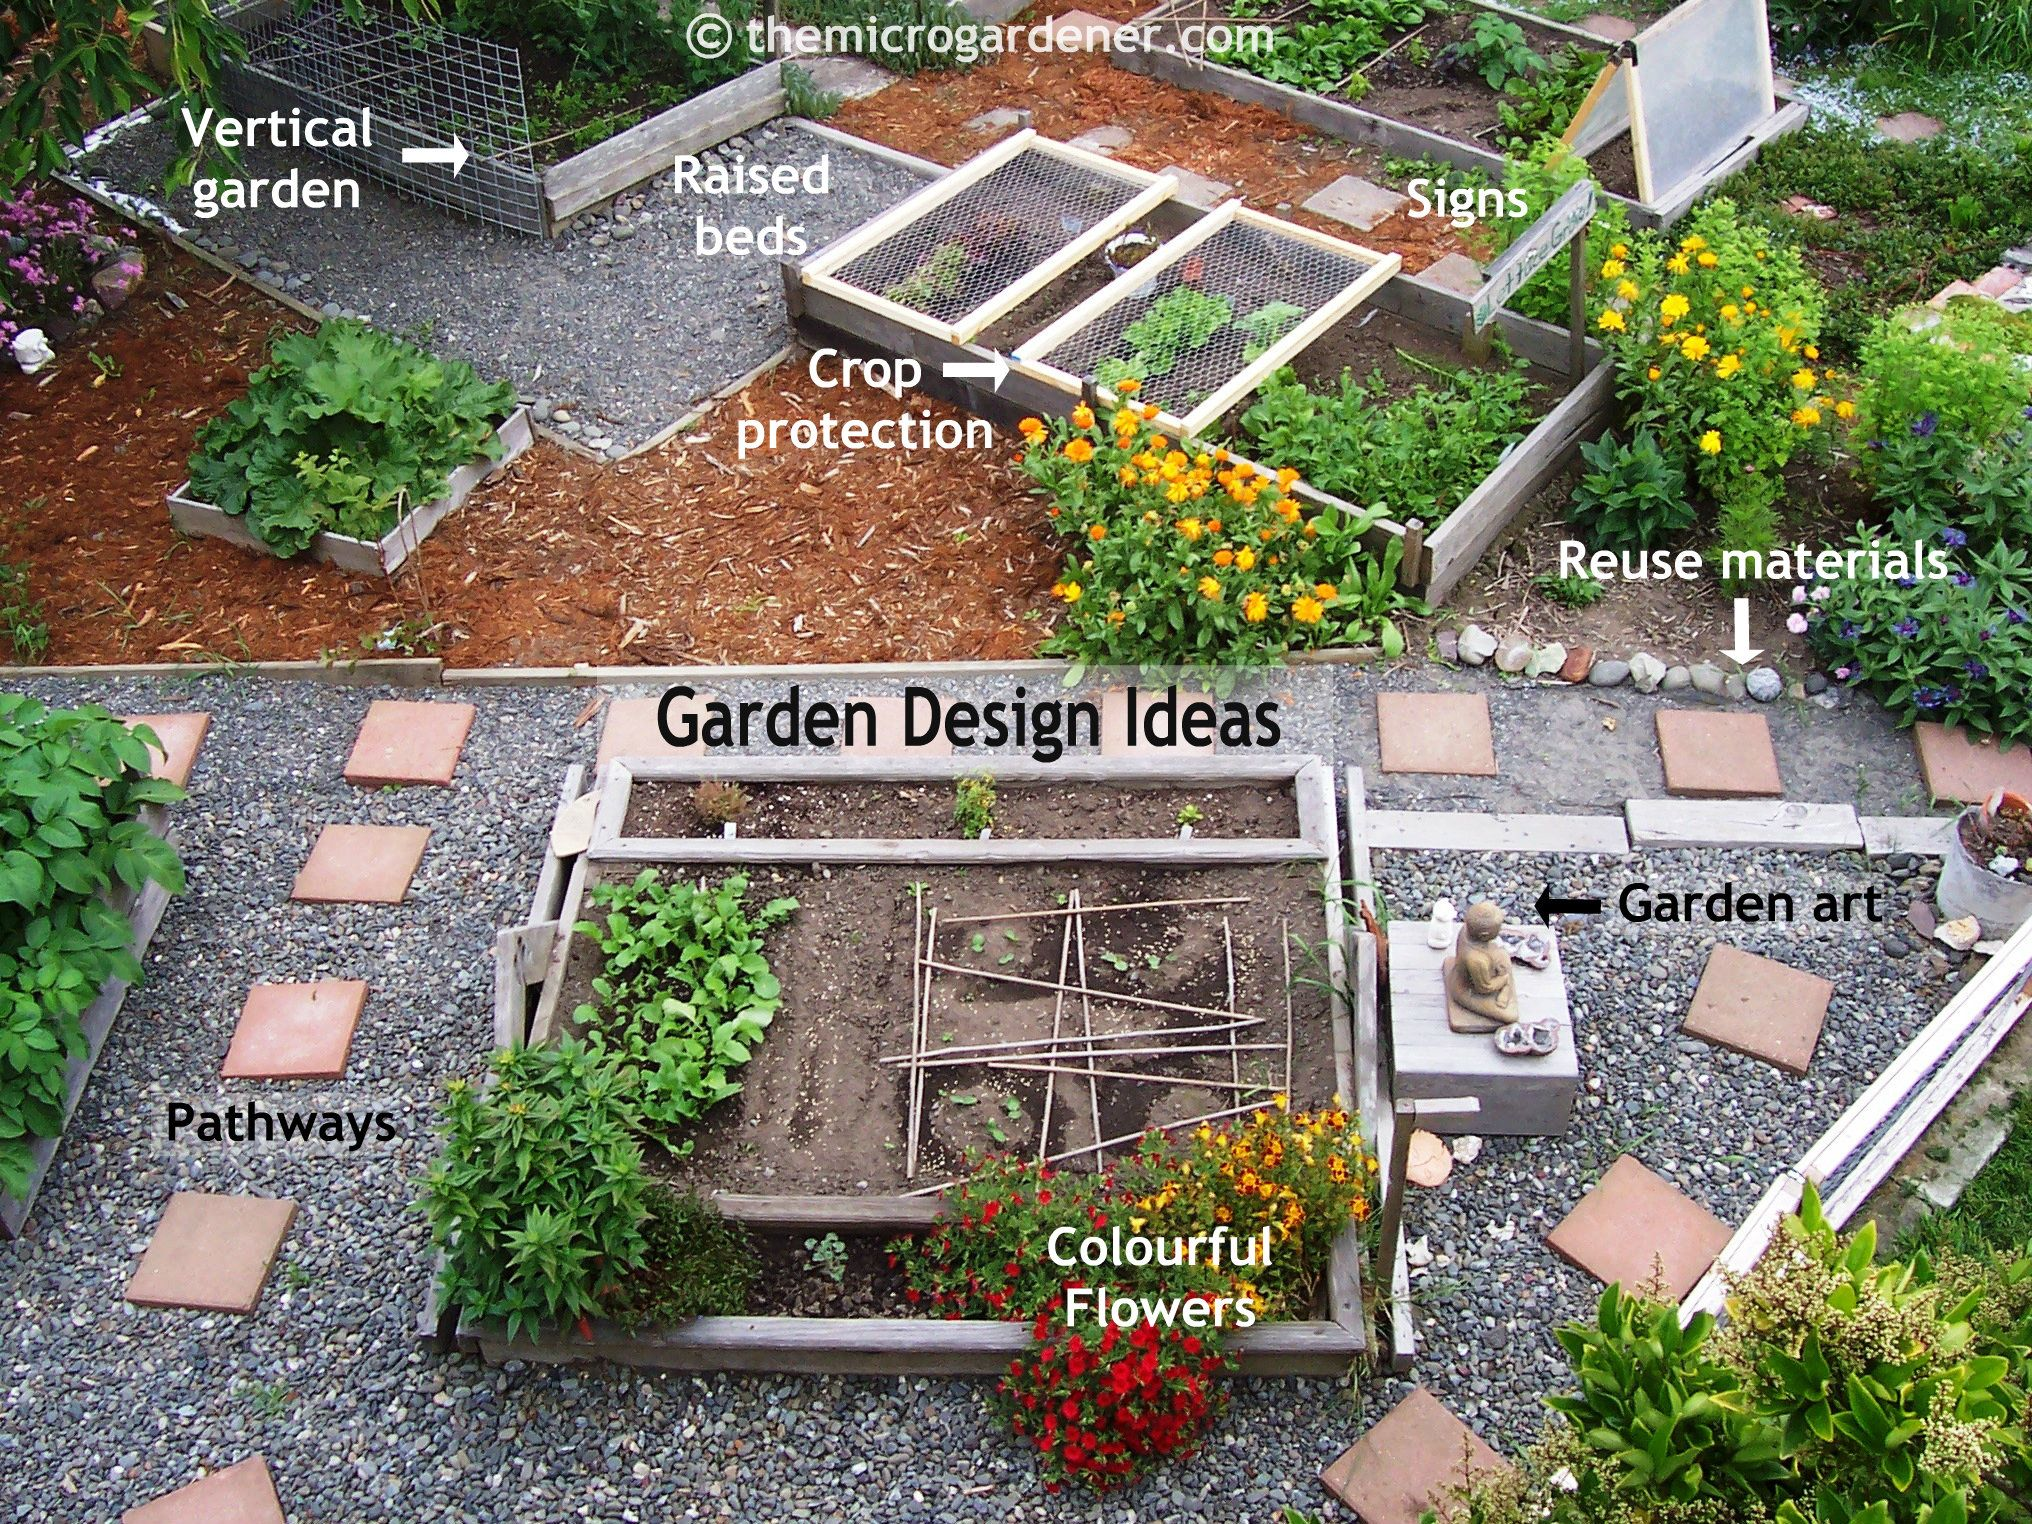 Kitchen garden design ideas - Small Garden Design Got Limited Space Or Planning A Kitchen Garden If You Want